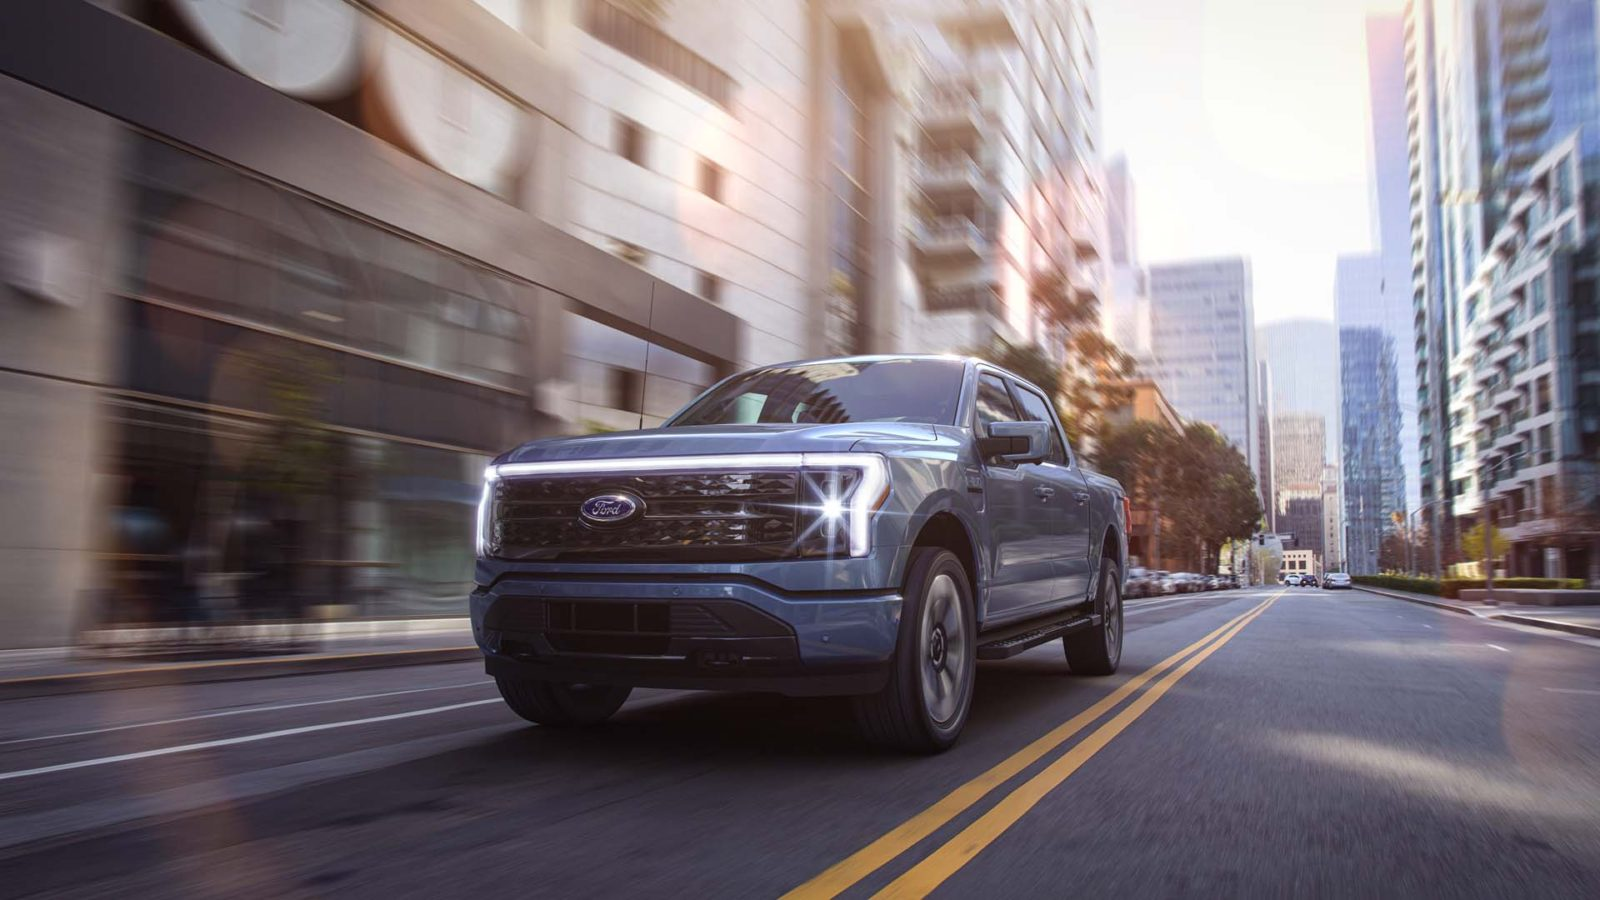 2022-ford-f-150-lightning,-2021-acura-tlx-type-s,-vw-id.x-concept:-today's-car-news